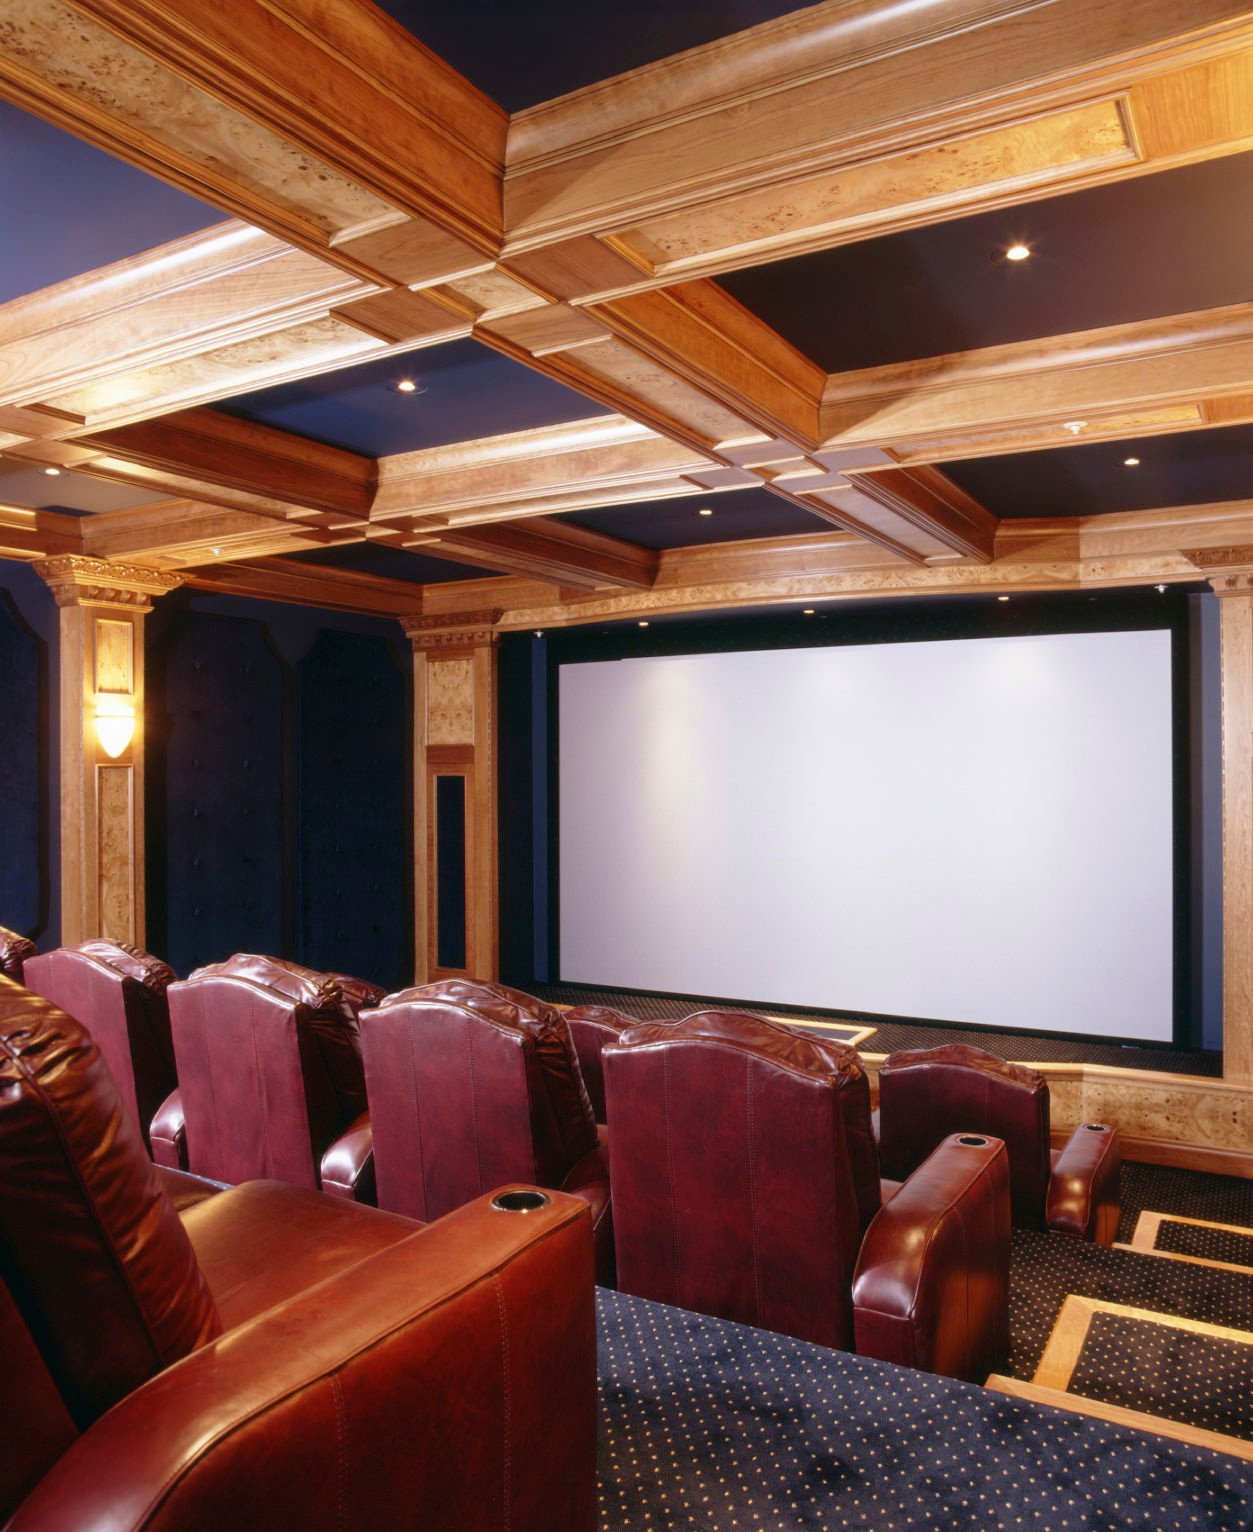 Home Theater Seat Design Ideas: 90 Home Theater & Media Room Ideas (Photos